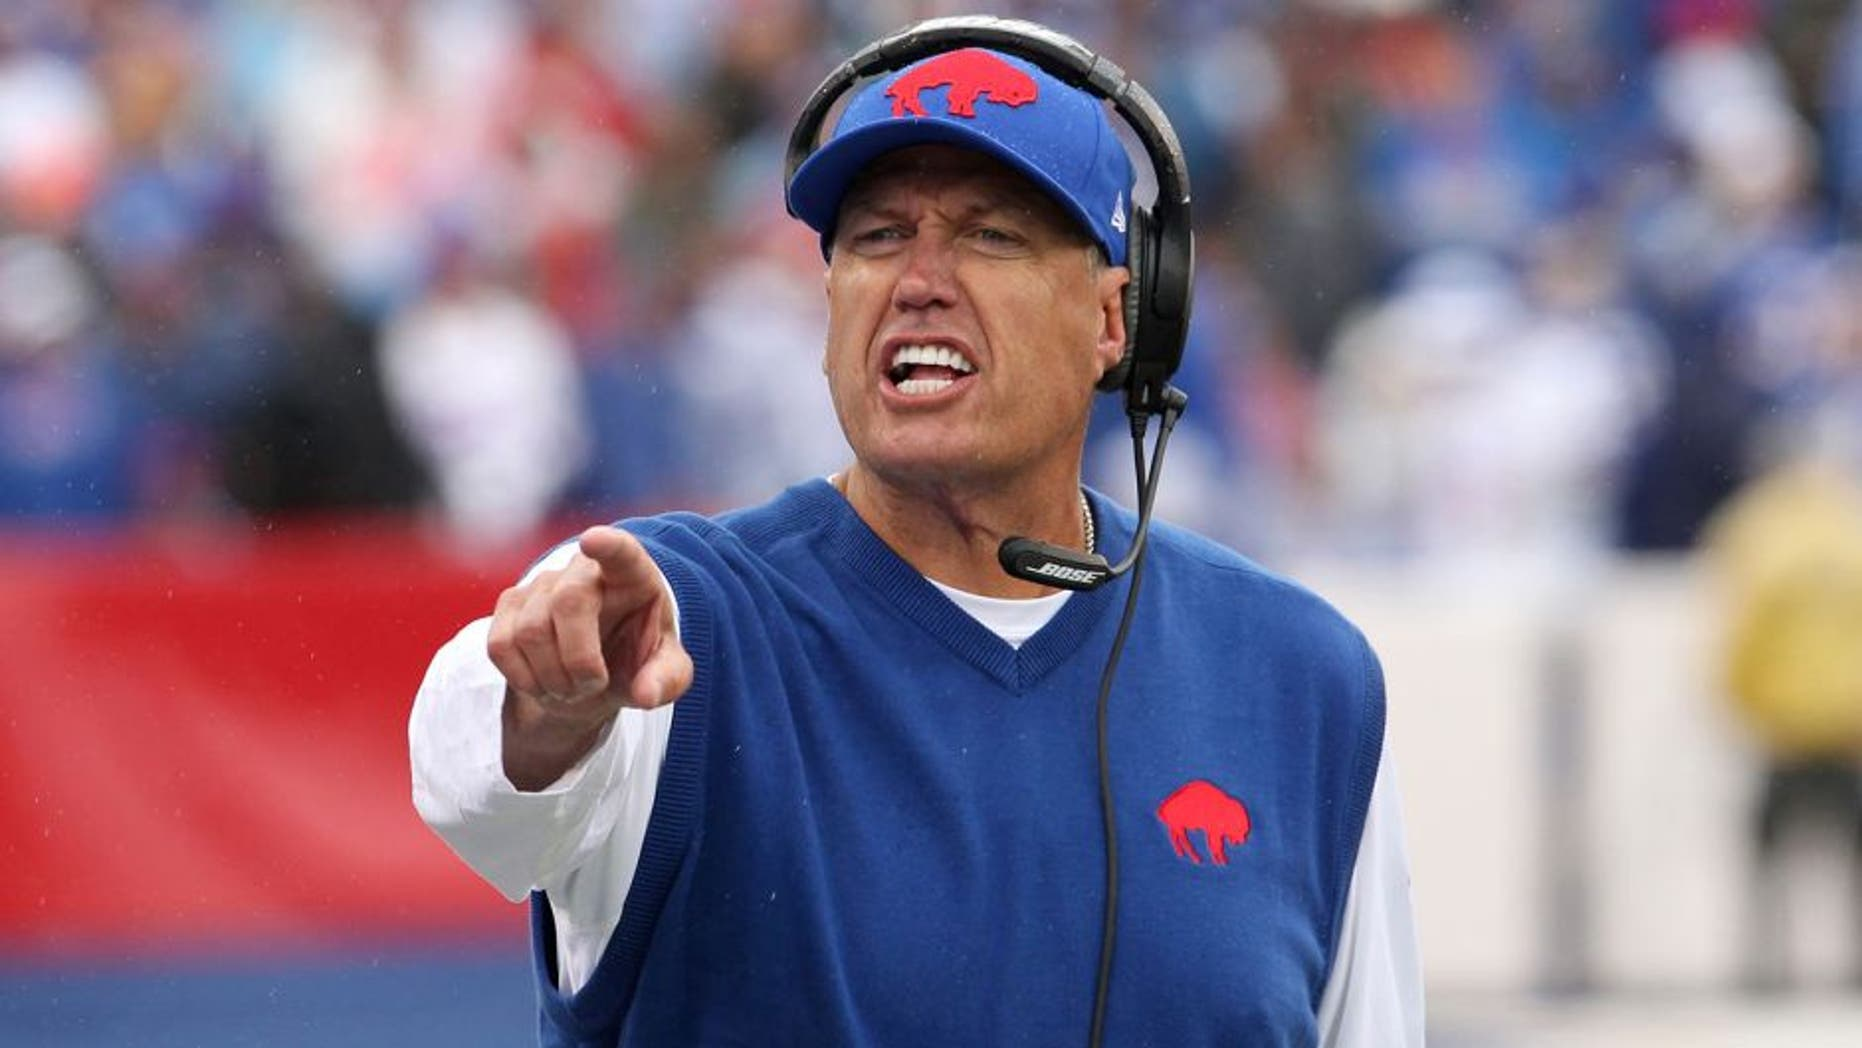 Sep 13, 2015; Orchard Park, NY, USA; Buffalo Bills head coach Rex Ryan yells to players on the bench during the second half against the Indianapolis Colts at Ralph Wilson Stadium. Bills beat the Colts 27 to 14. Mandatory Credit: Timothy T. Ludwig-USA TODAY Sports